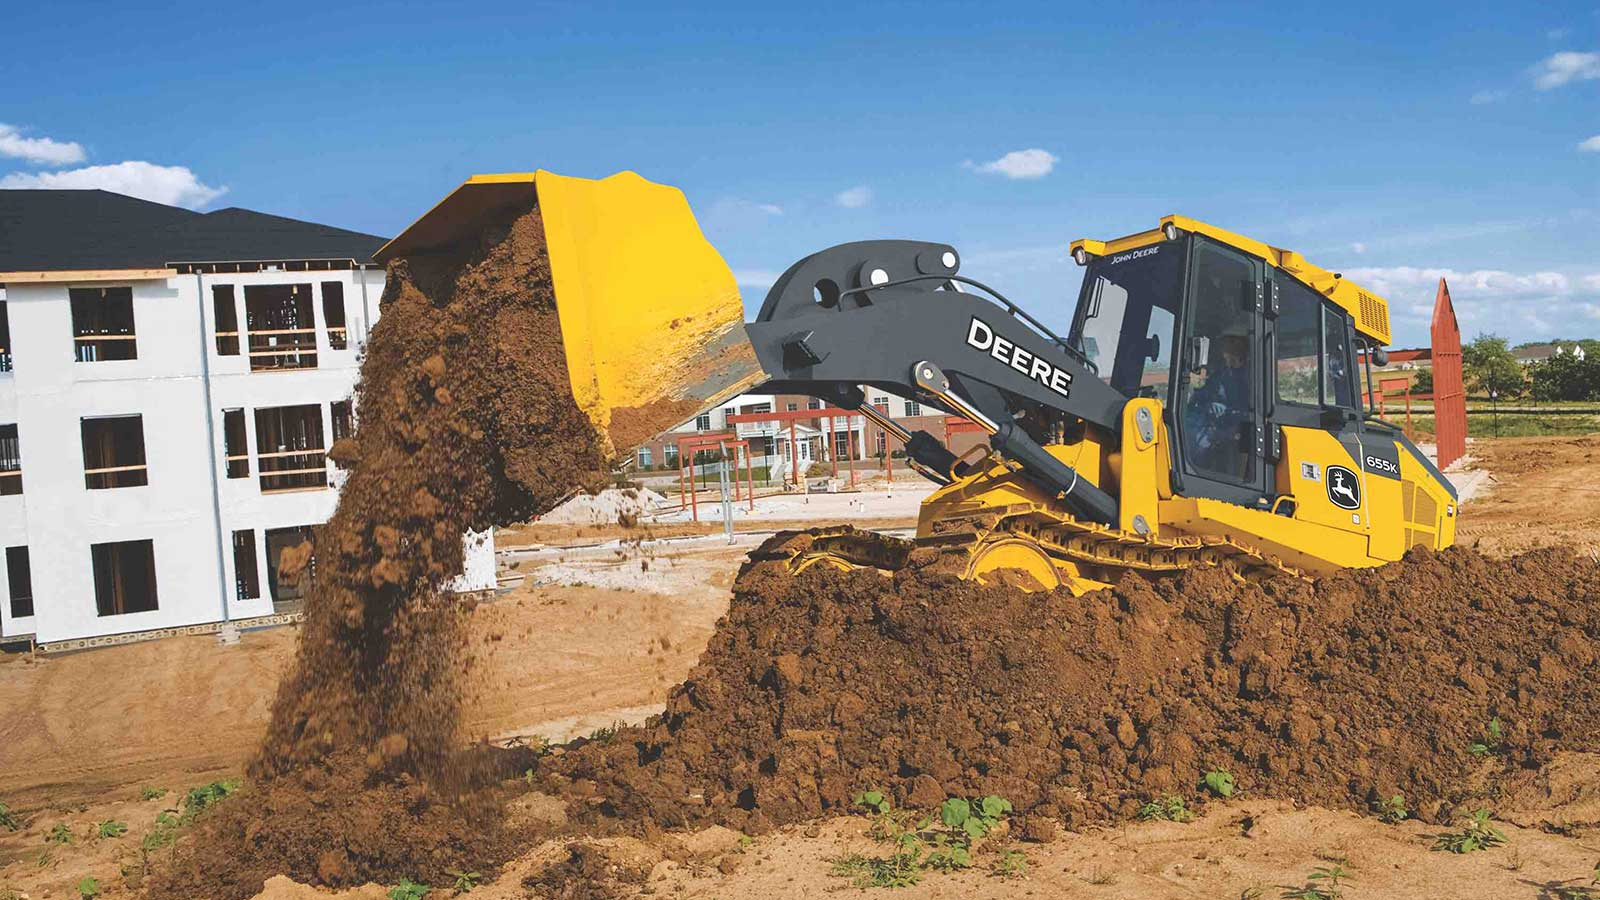 655K Crawler Loader dumping dirt out of its bucket